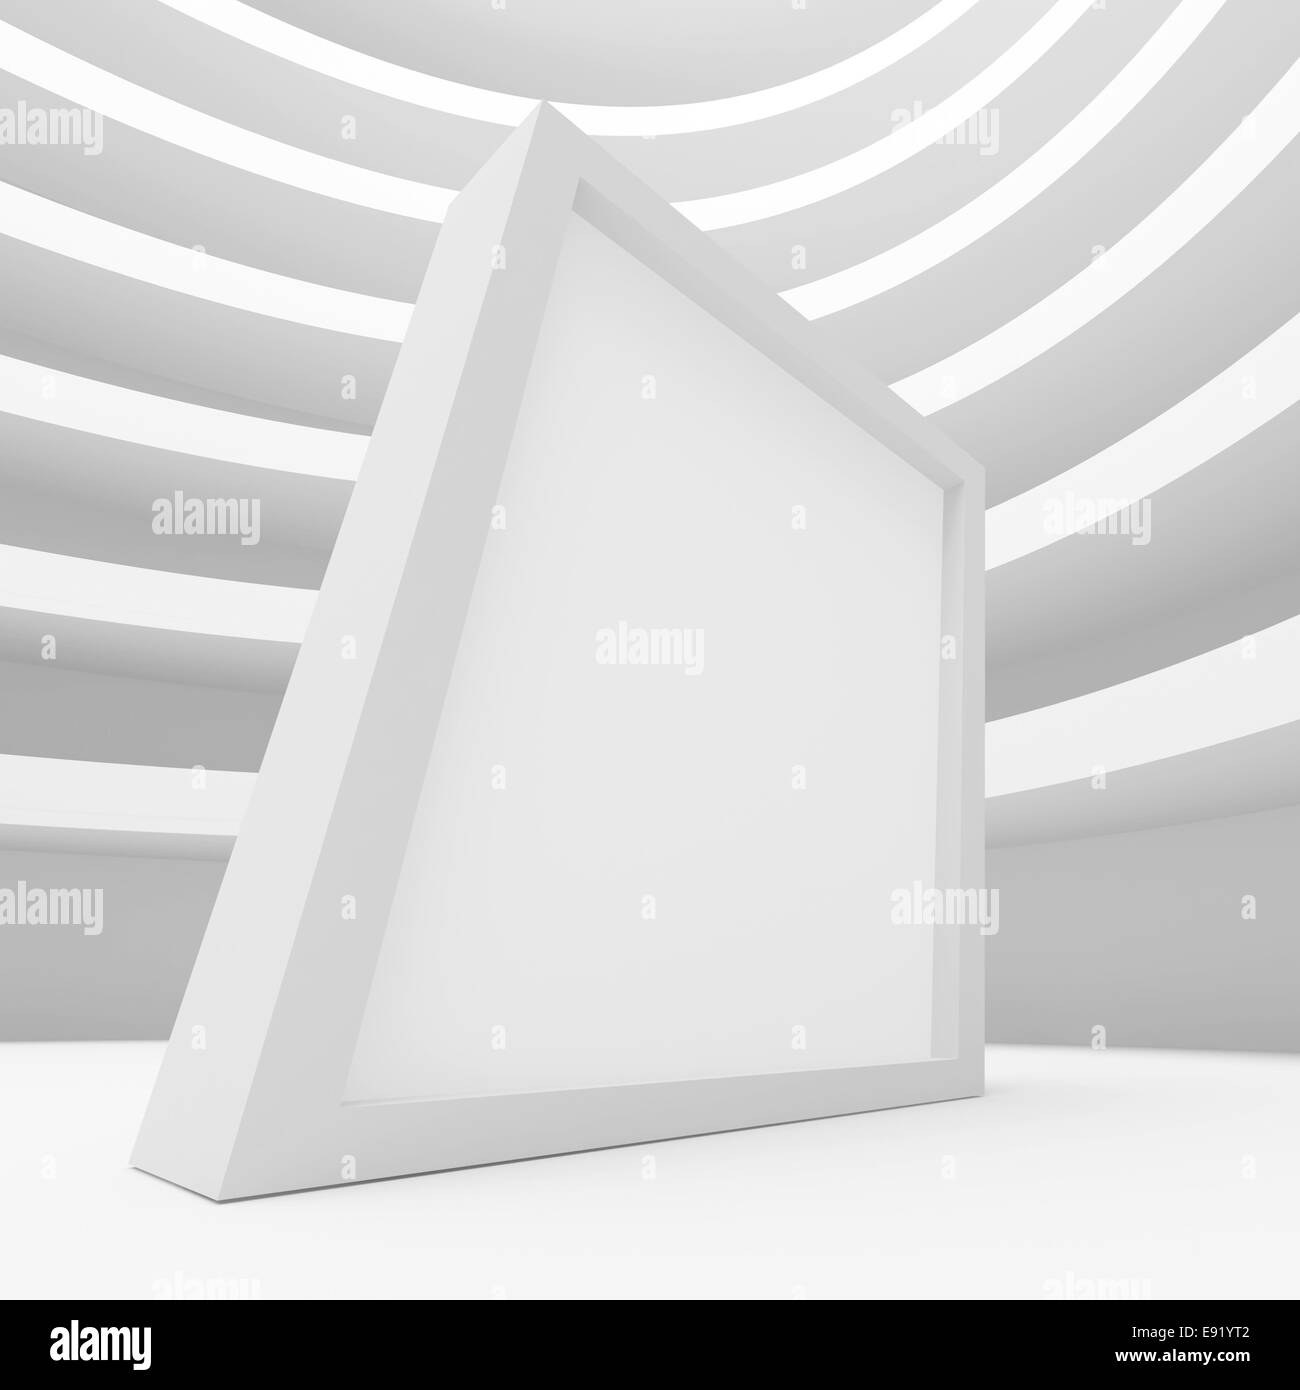 Abstract Architecture Construction - Stock Image